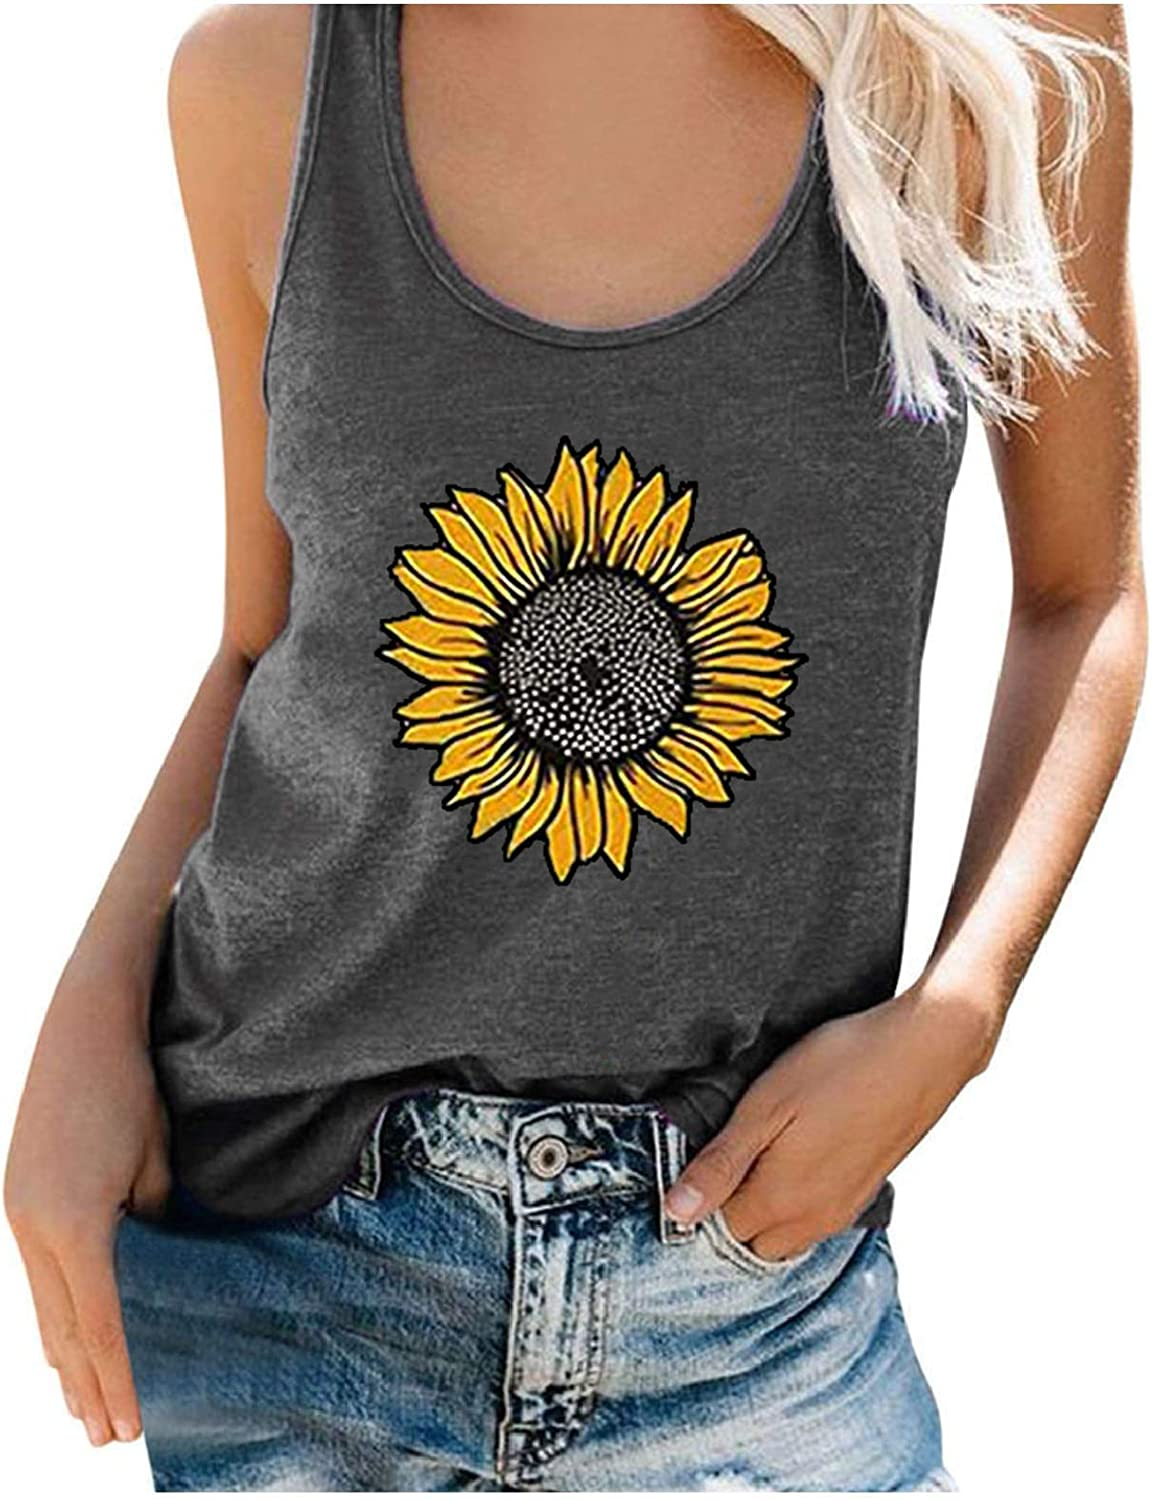 Womens Vintage Graphic Tank Tops Fit Print trend rank Sunflower El Paso Mall Loose Scoop